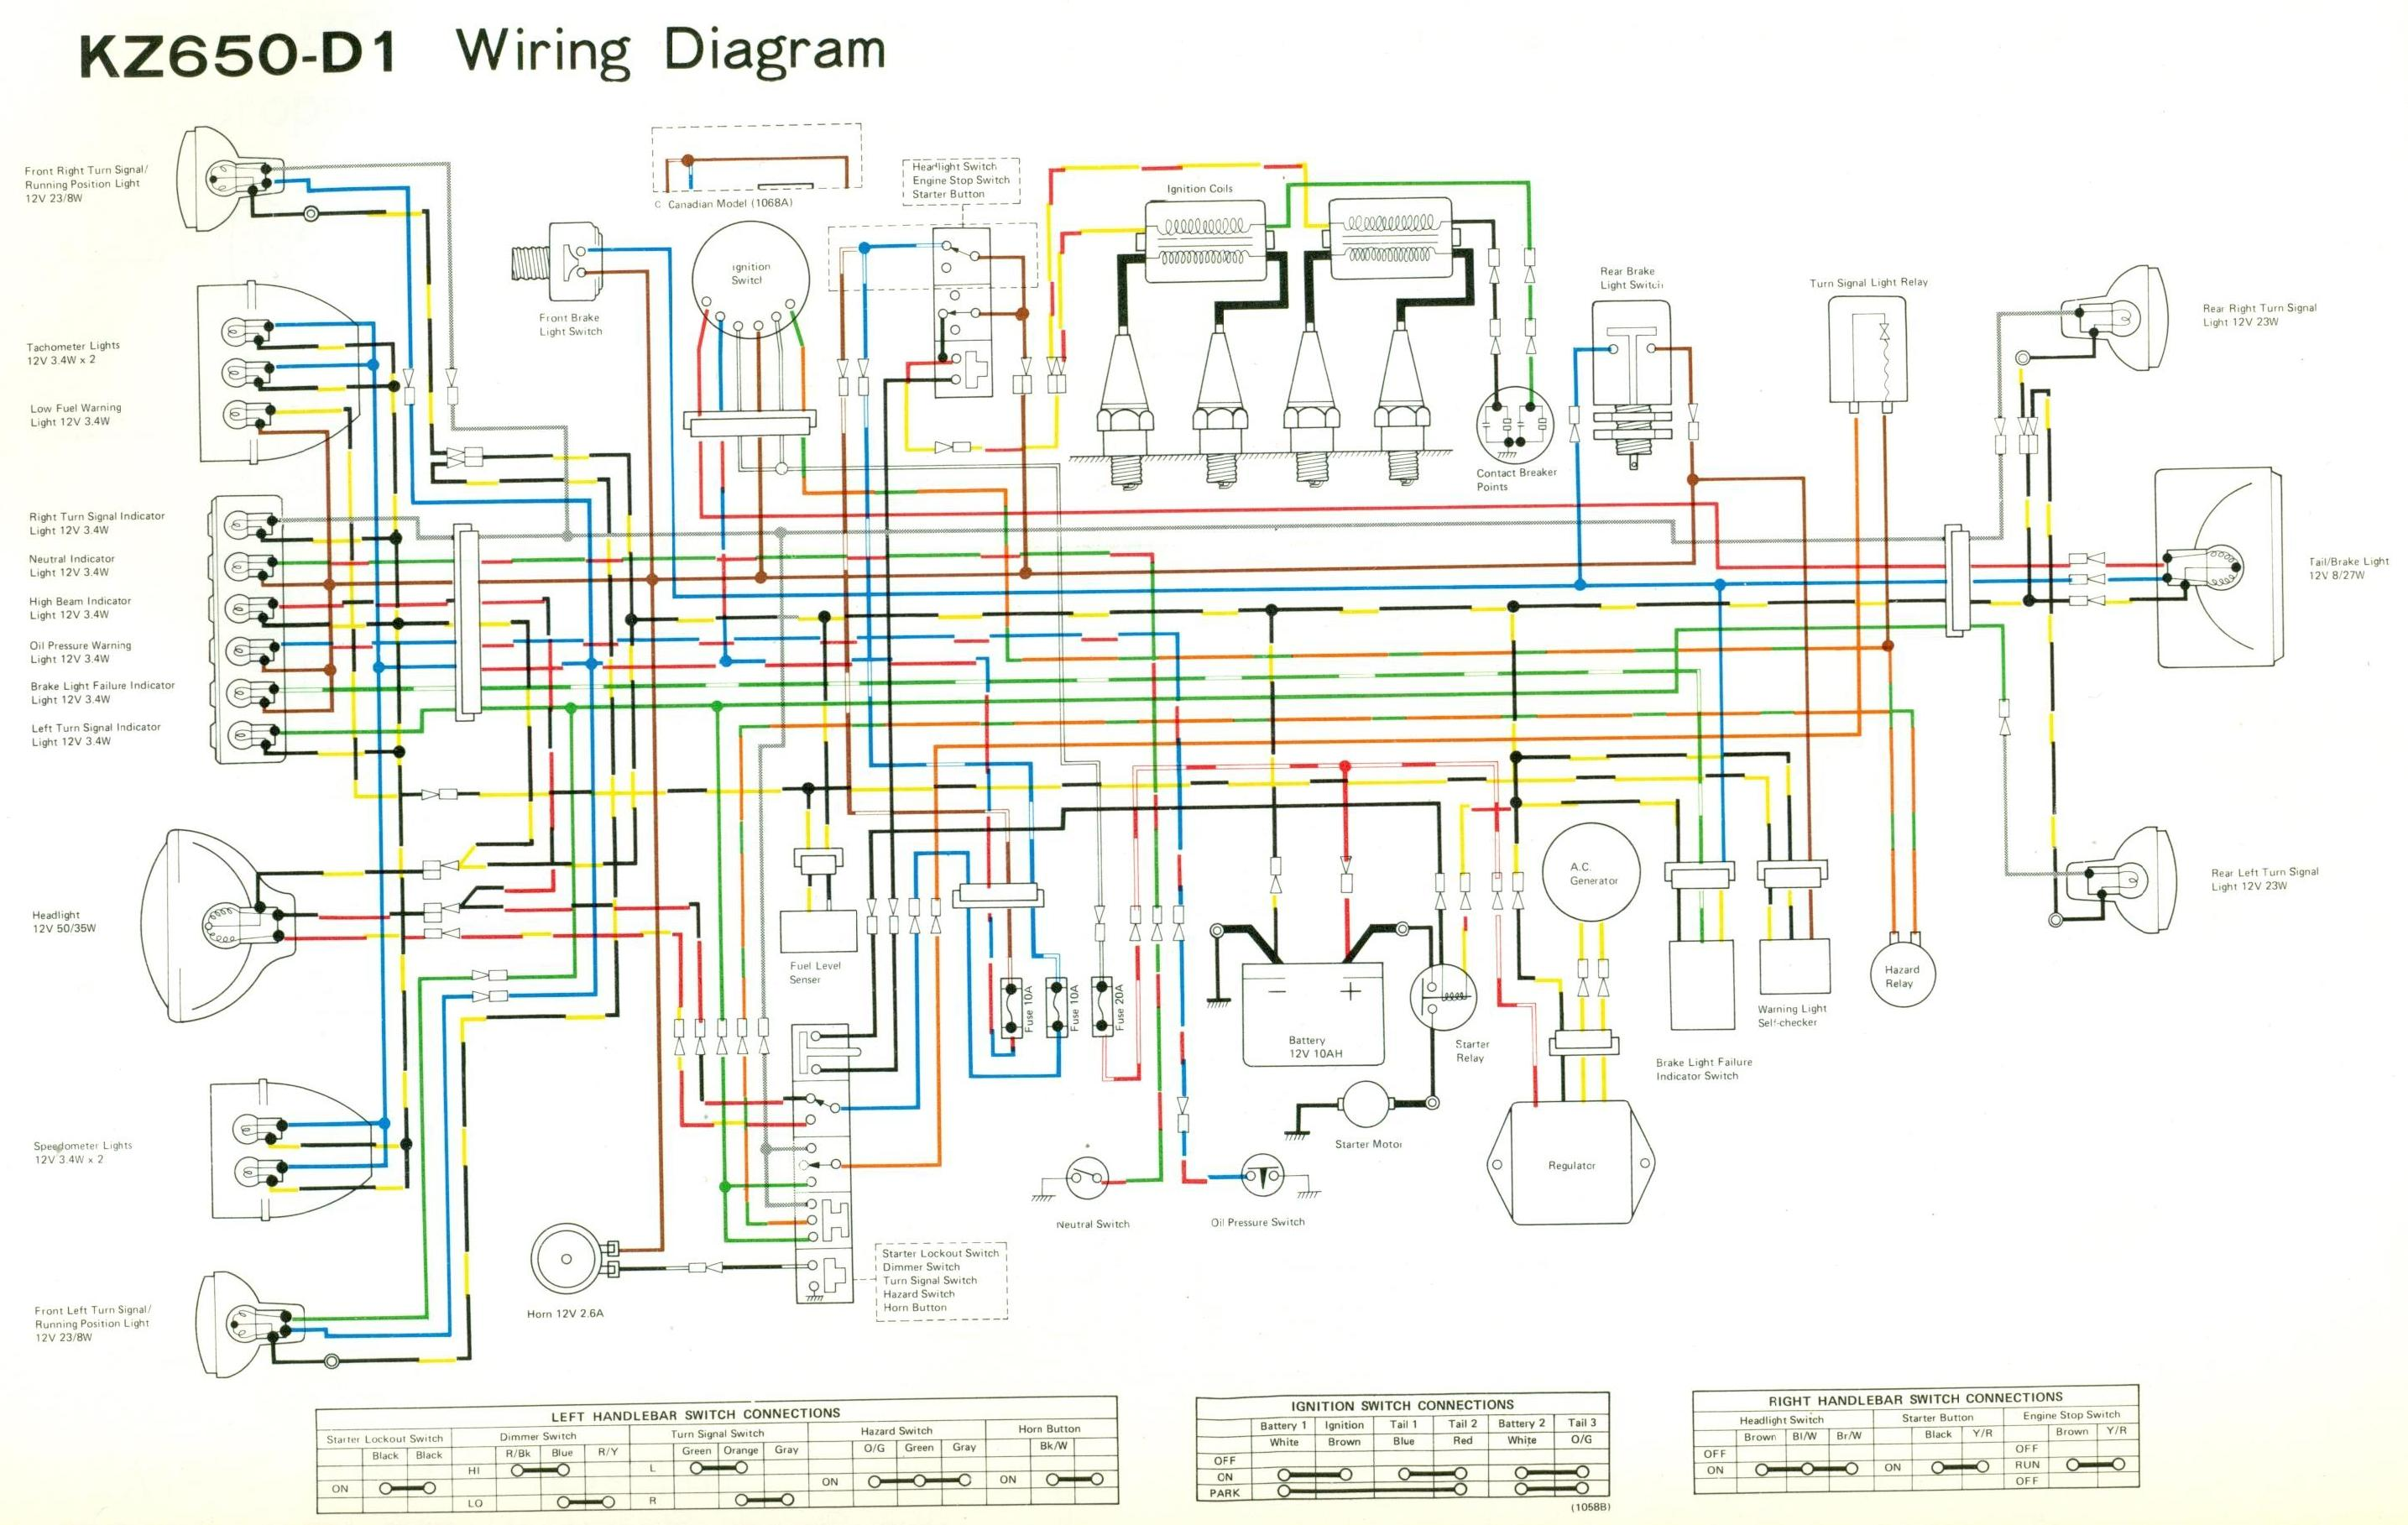 KZ650 D wiring diagrams 1984 honda nighthawk 650 wiring diagram at fashall.co